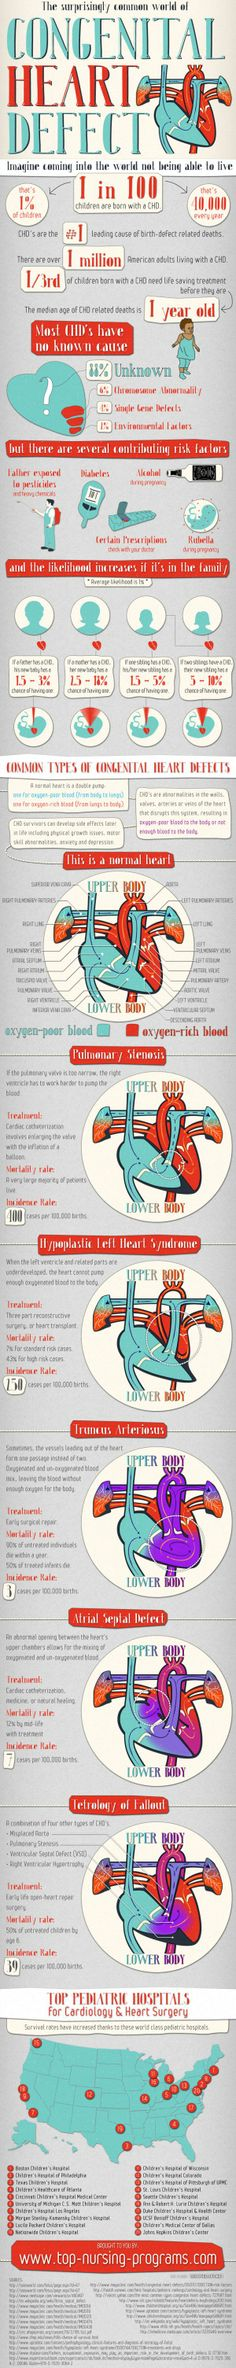 Infographic: Exploring congenital heart defects